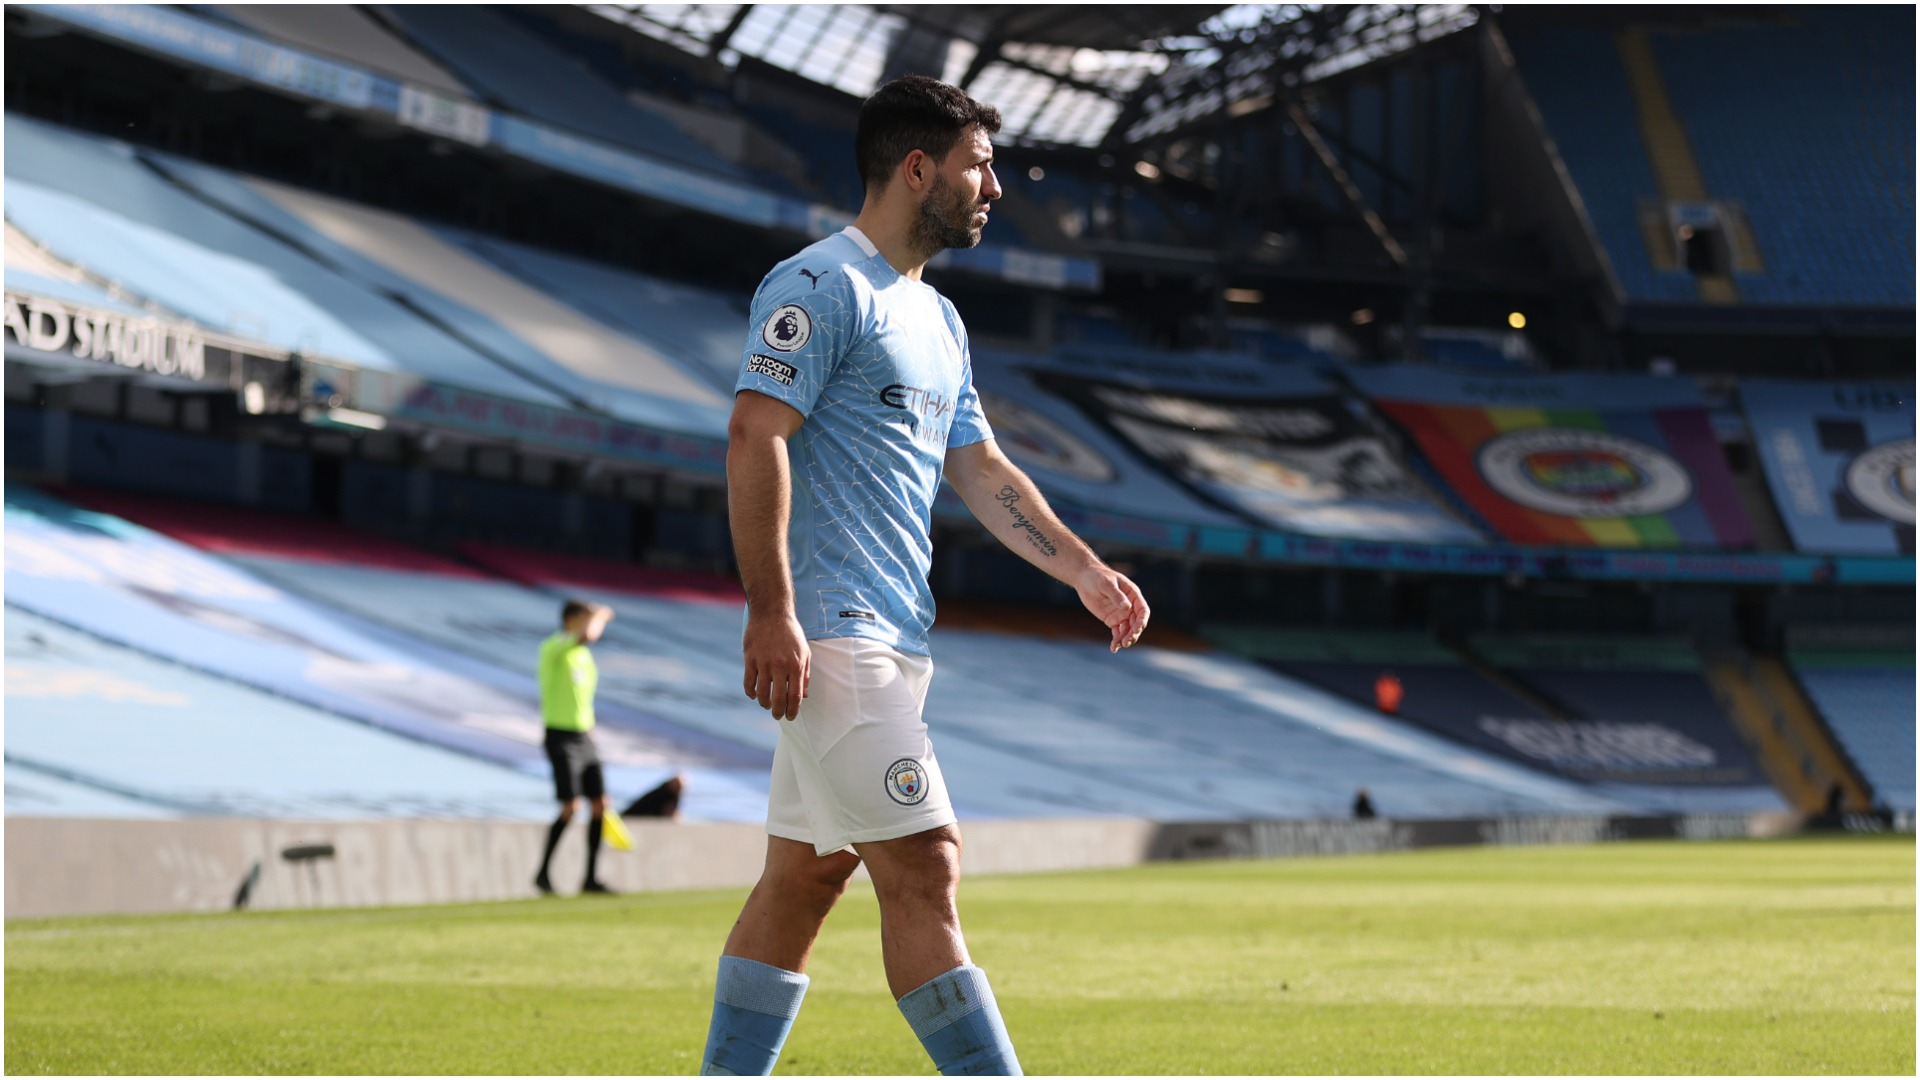 Fit-again Sergio Aguero will have to bide his time as Pep Guardiola carries on rotating Manchester City's squad.